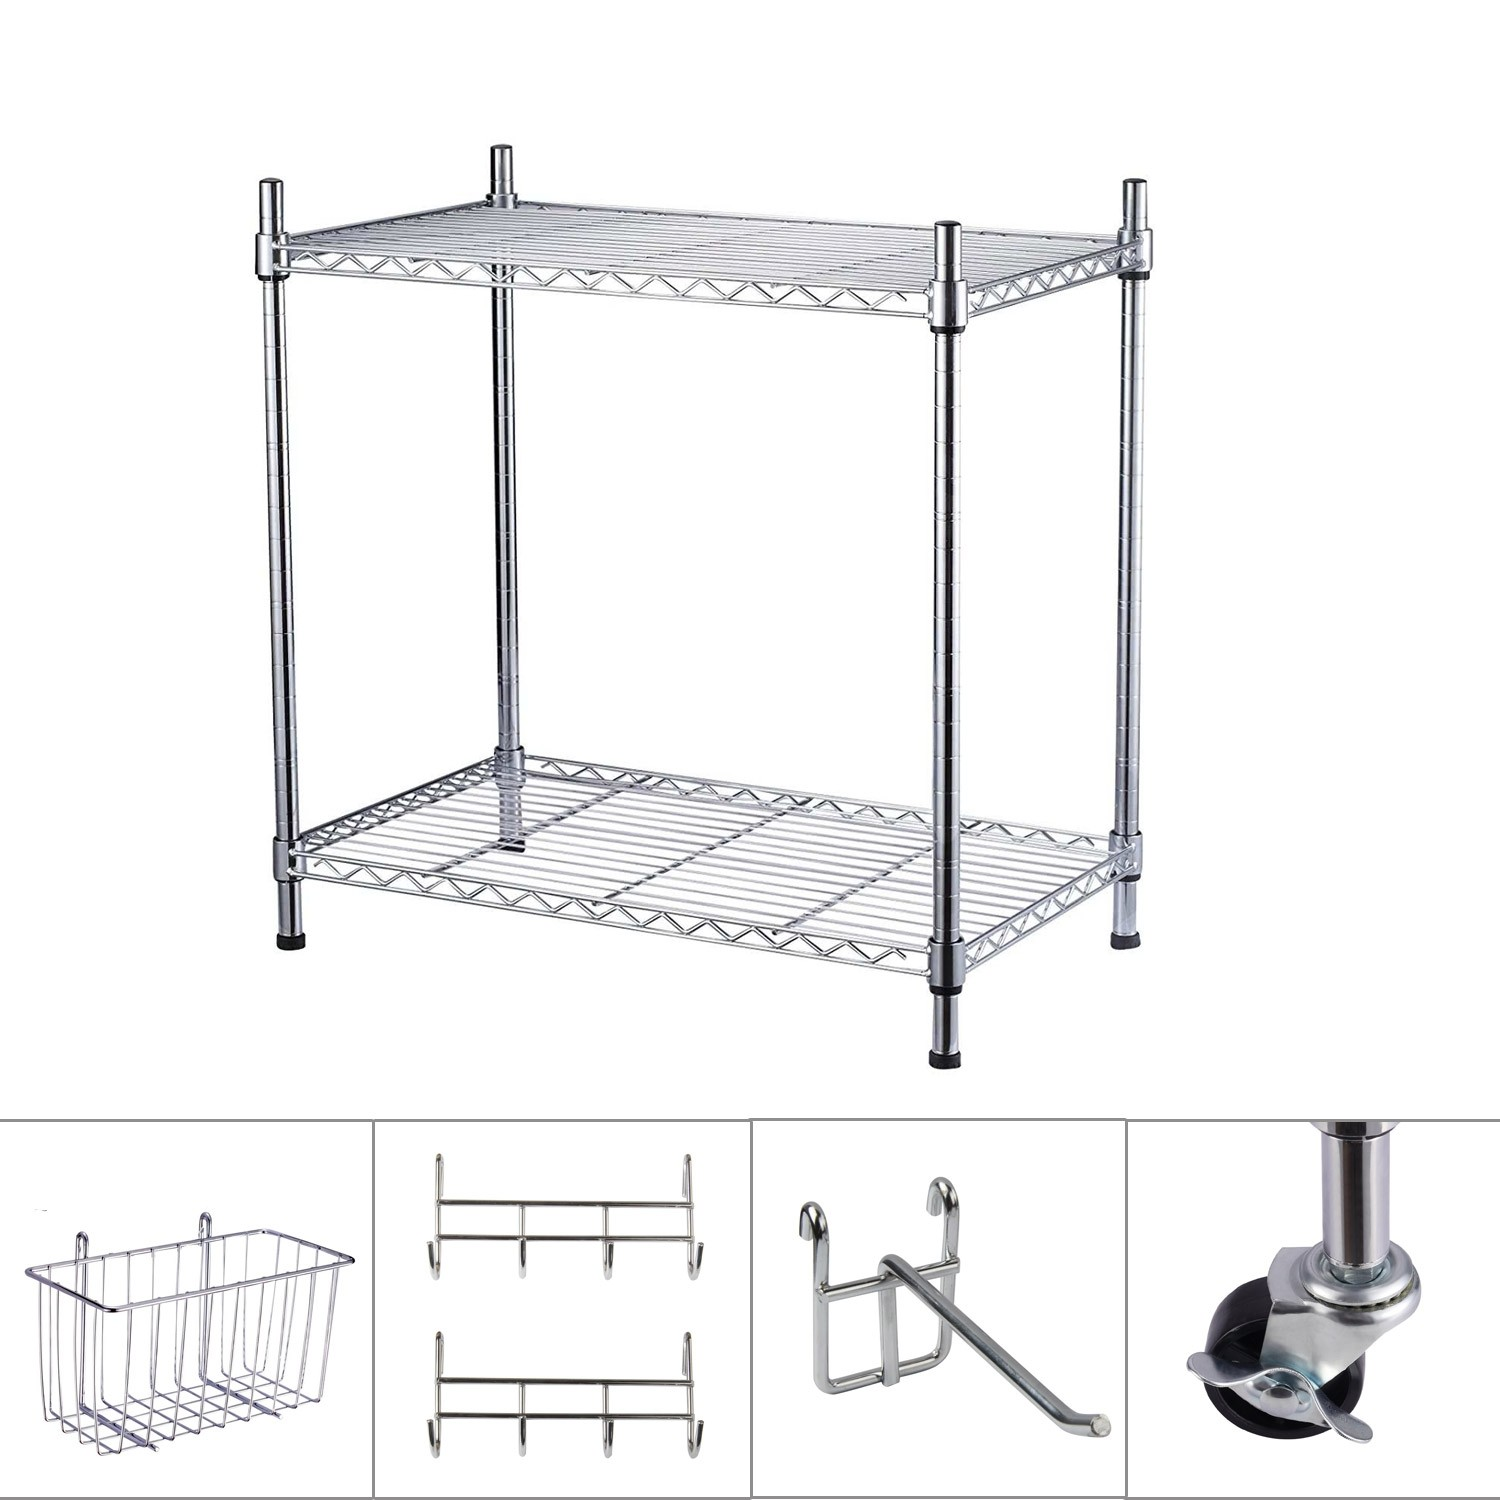 Küchenregal Metall Ø19mm 60 X 35 X 60cm Yorbay Standregal Set Aus Verchromten Metall